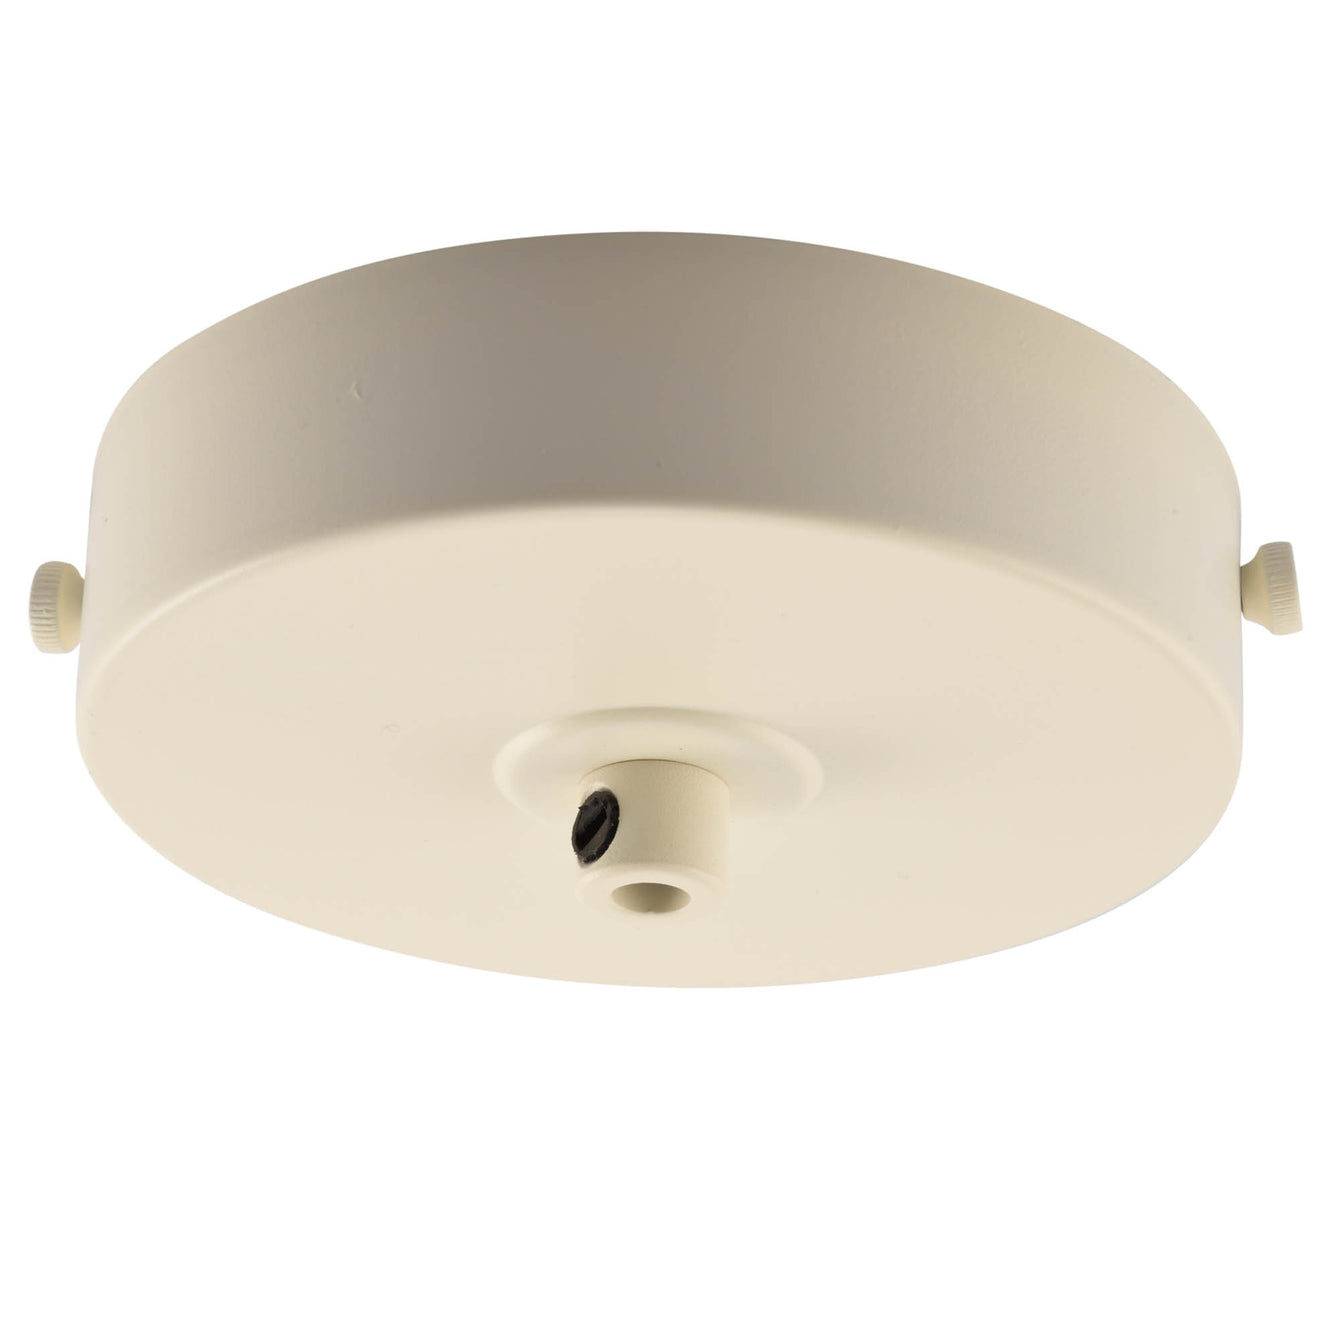 ElekTek 100mm Diameter Flat Top Ceiling Rose with Strap Bracket and Cord Grip Metallic Finishes Powder Coated Colours - Buy It Better